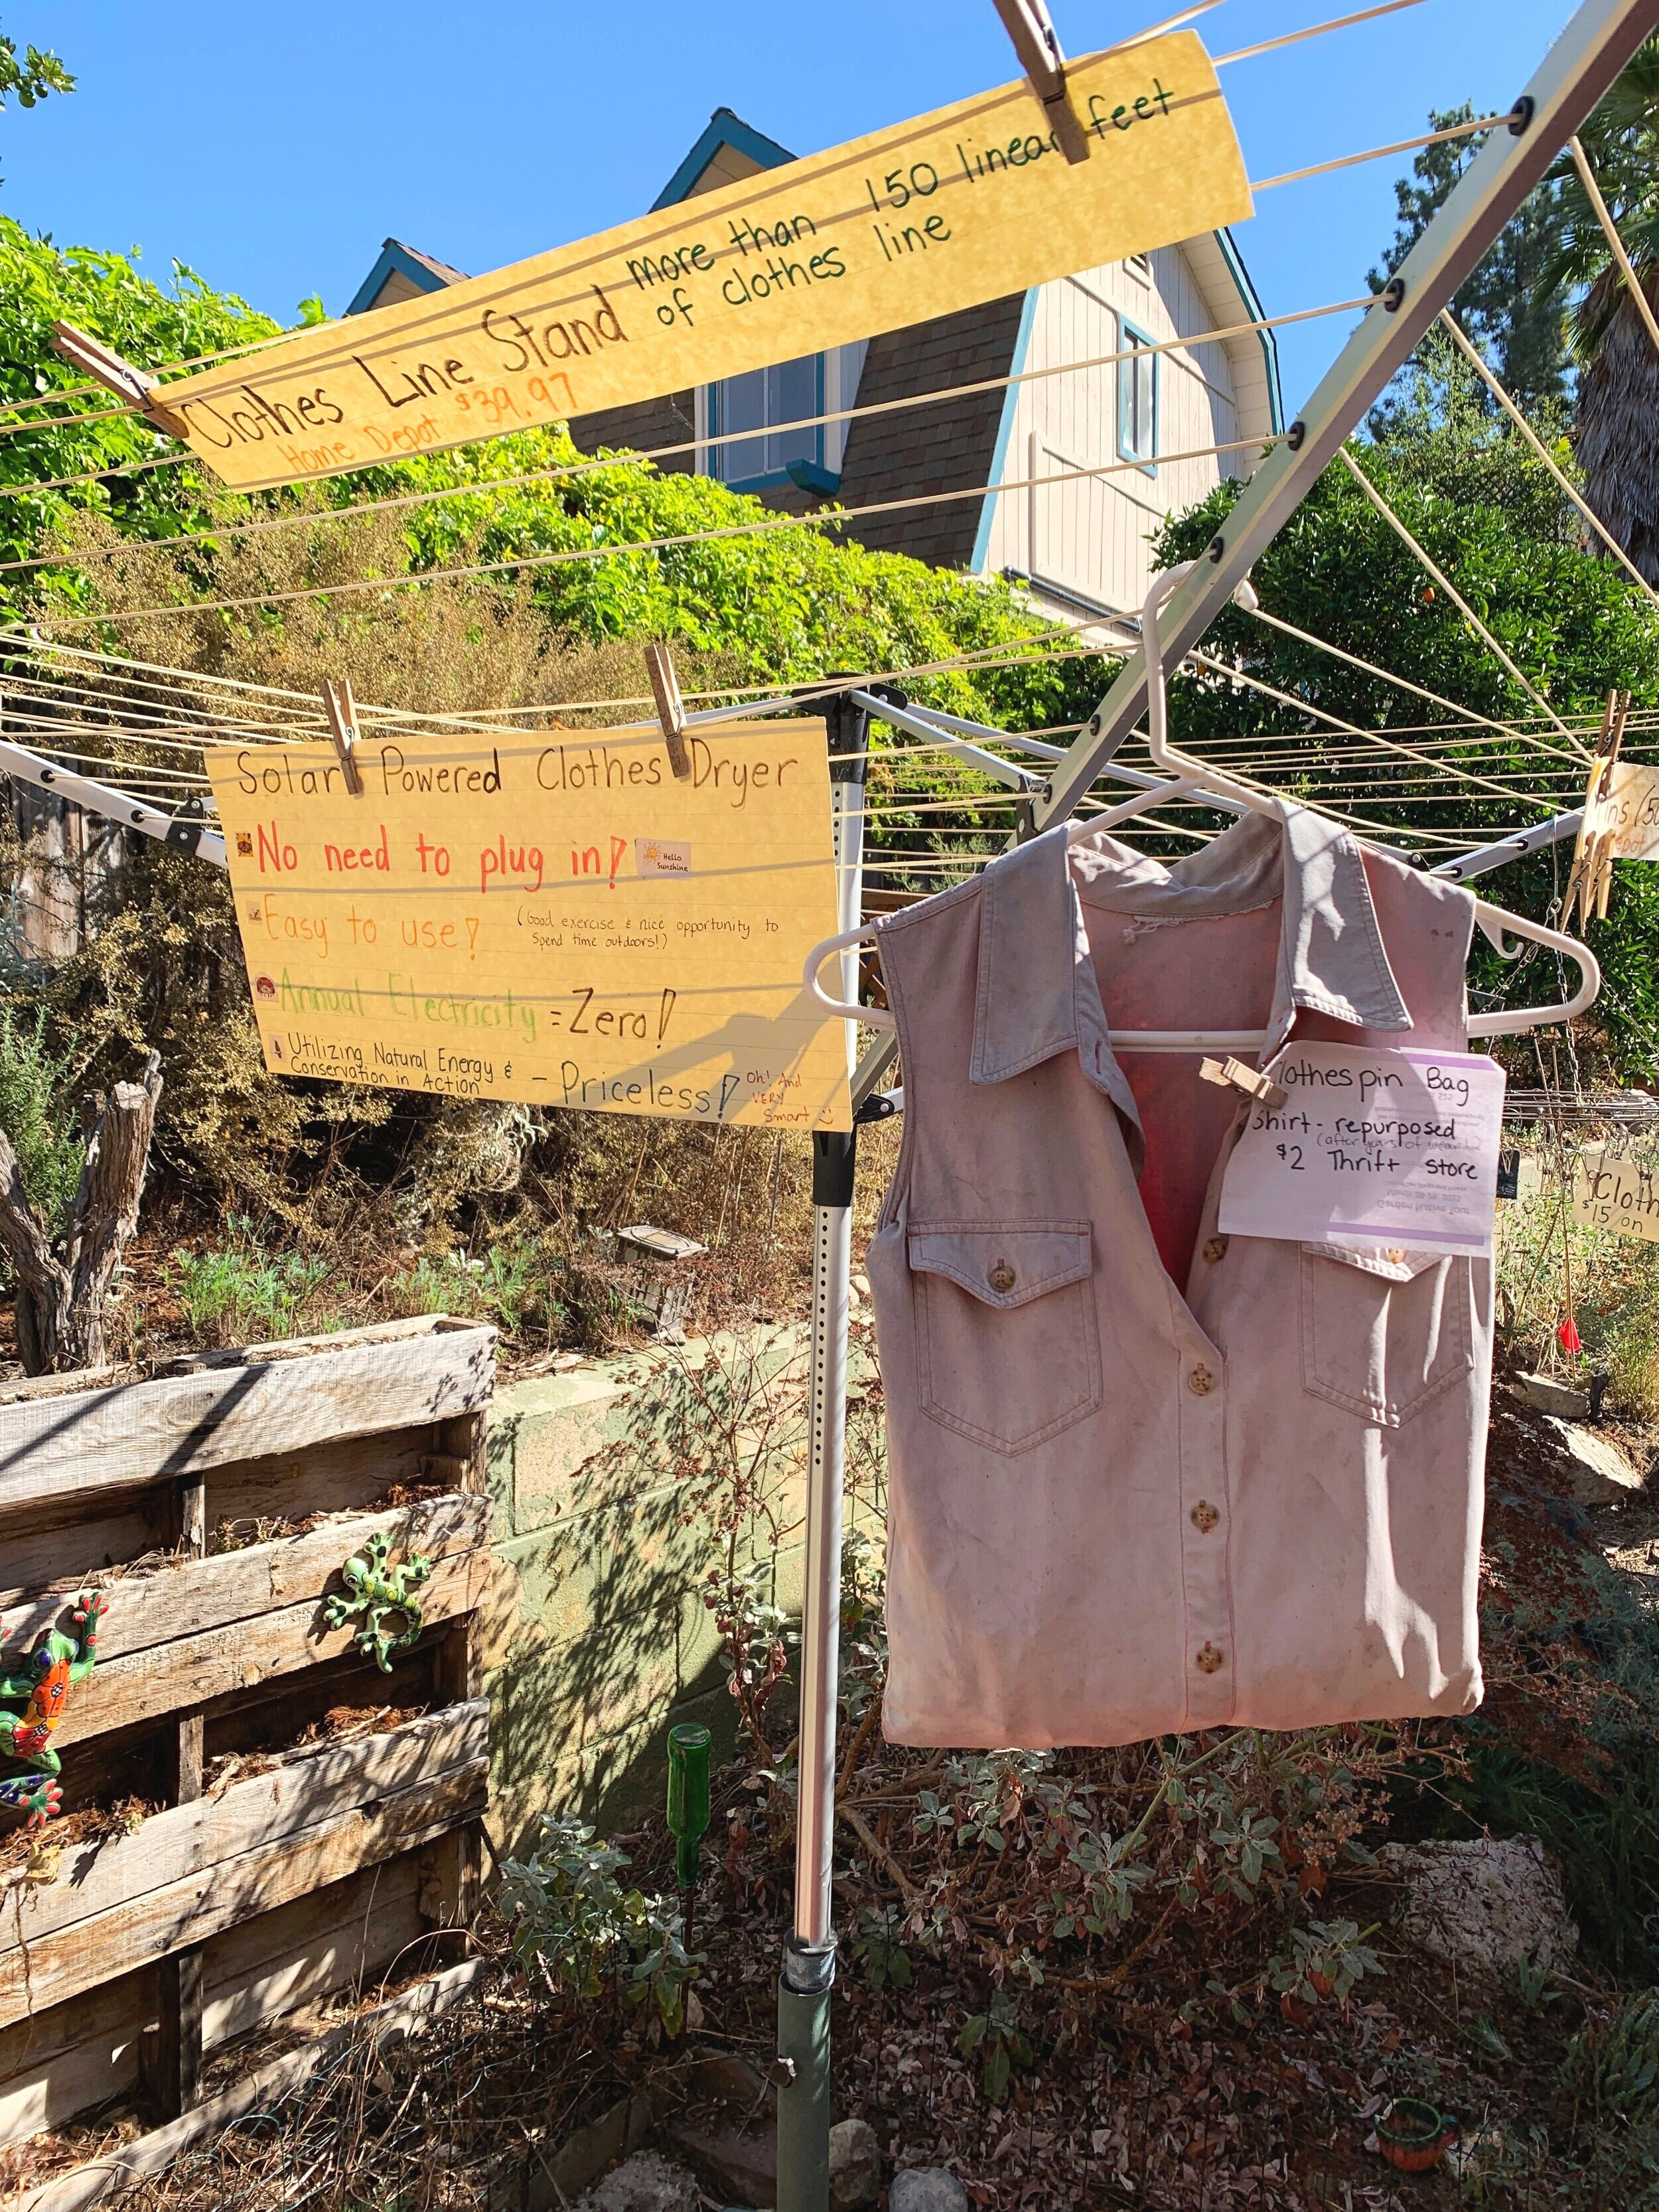 The Gold Hive Green Homes Tour Solar Powered Clothes Dryer